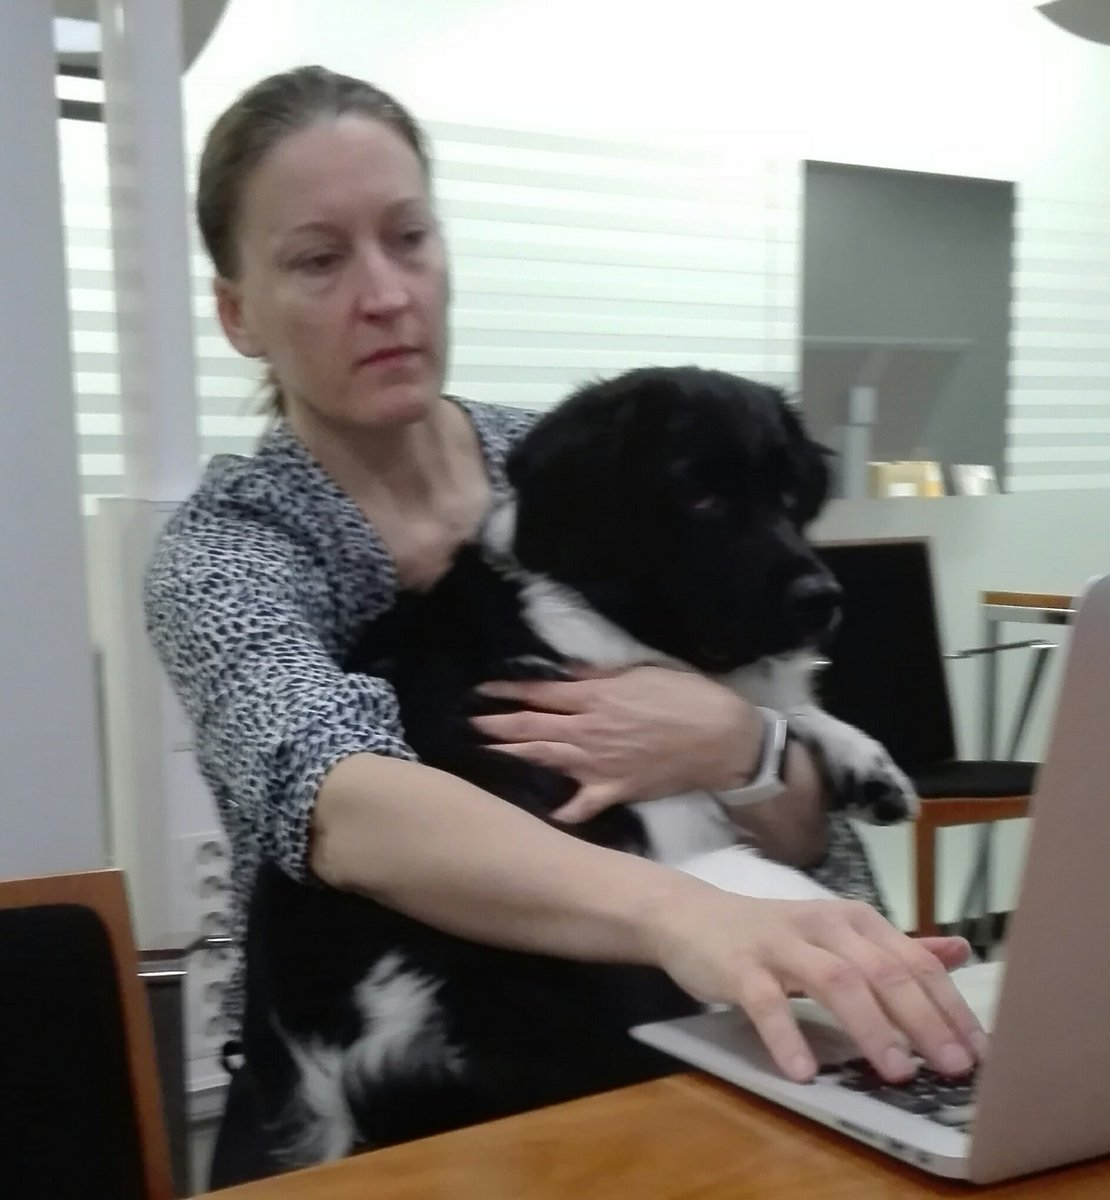 #impacthelsinki Thinking out-of-the-box! Today our team got some support from the canine family. @mspahkal @TanjaSuni @KristerTalvinen<br>http://pic.twitter.com/ey5JIPjlsT